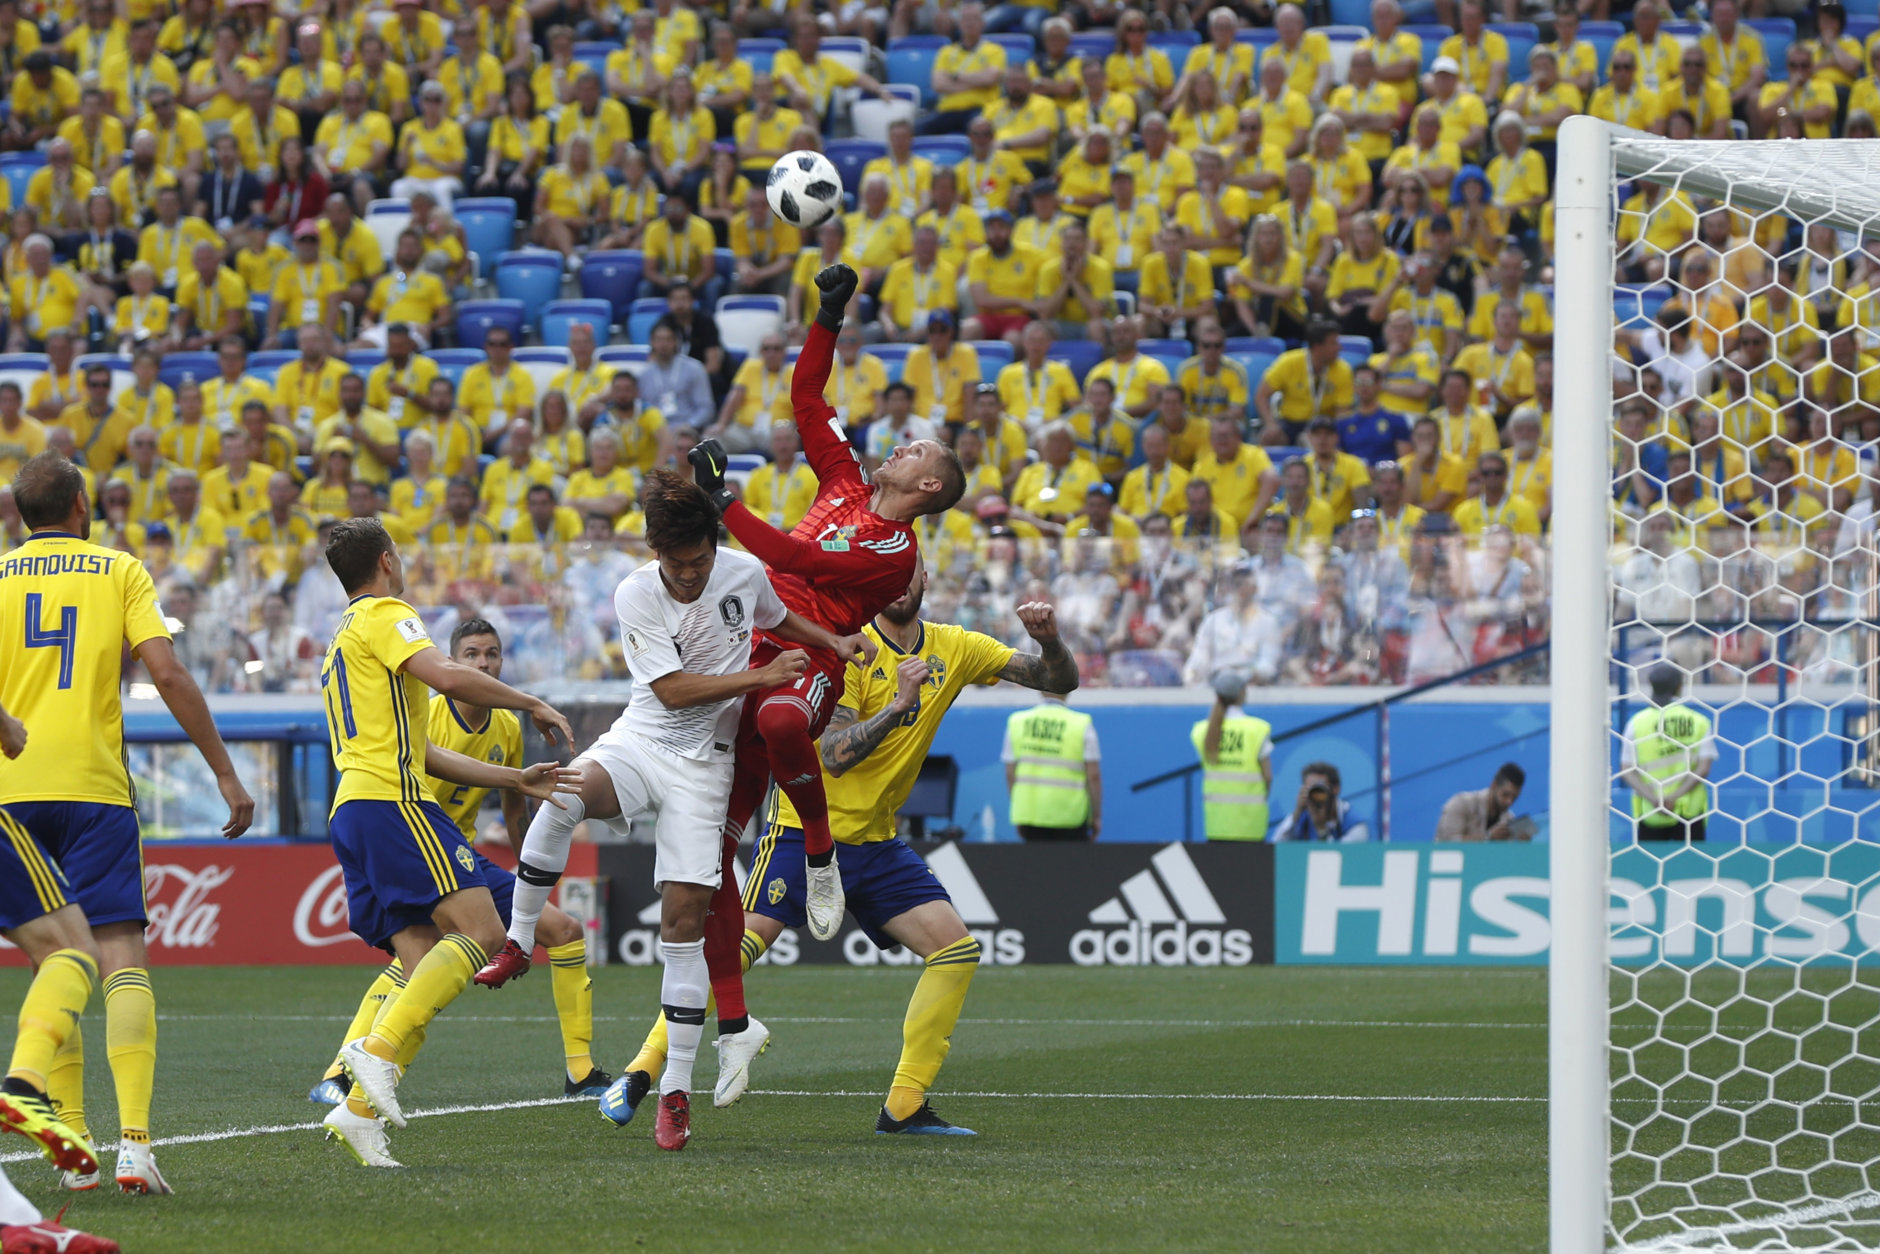 Sweden goalkeeper Robin Olsen makes a save during the group F match between Sweden and South Korea at the 2018 soccer World Cup in the Nizhny Novgorod stadium in Nizhny Novgorod, Russia, Monday, June 18, 2018. (AP Photo/Petr David Josek)